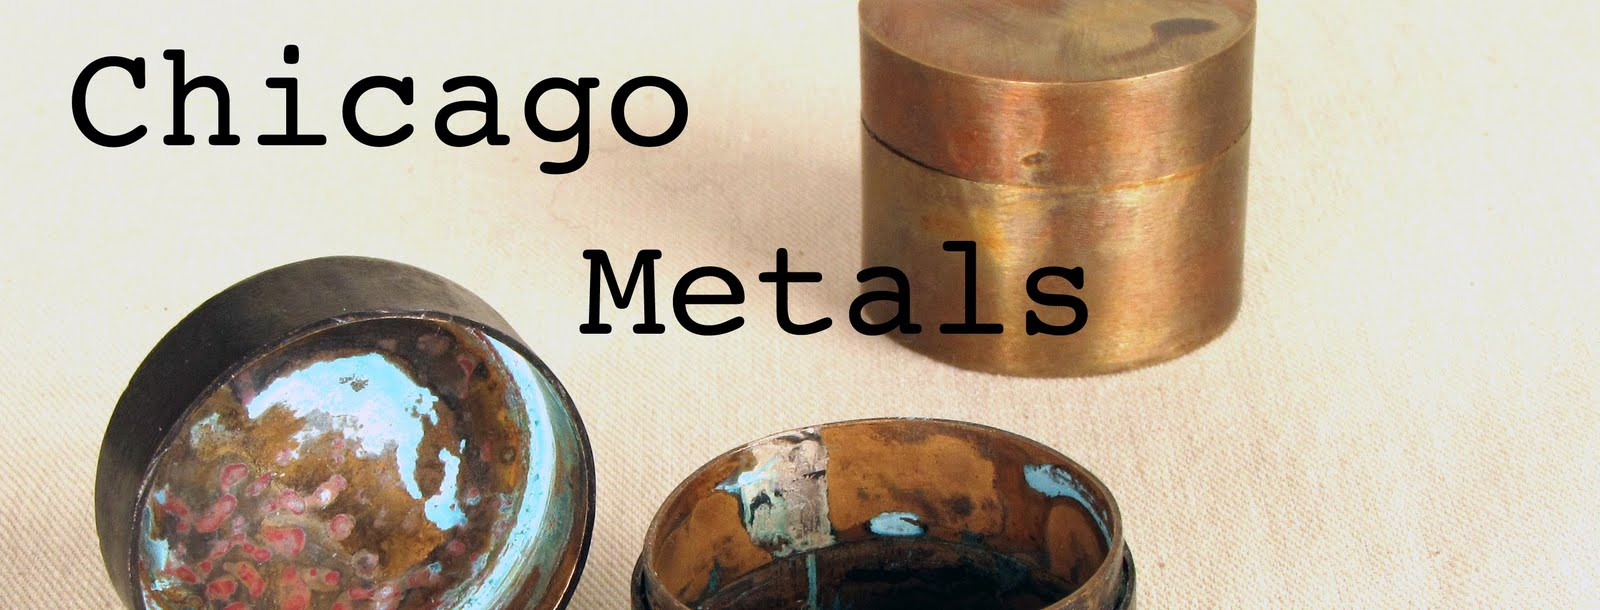 Chicago Metals